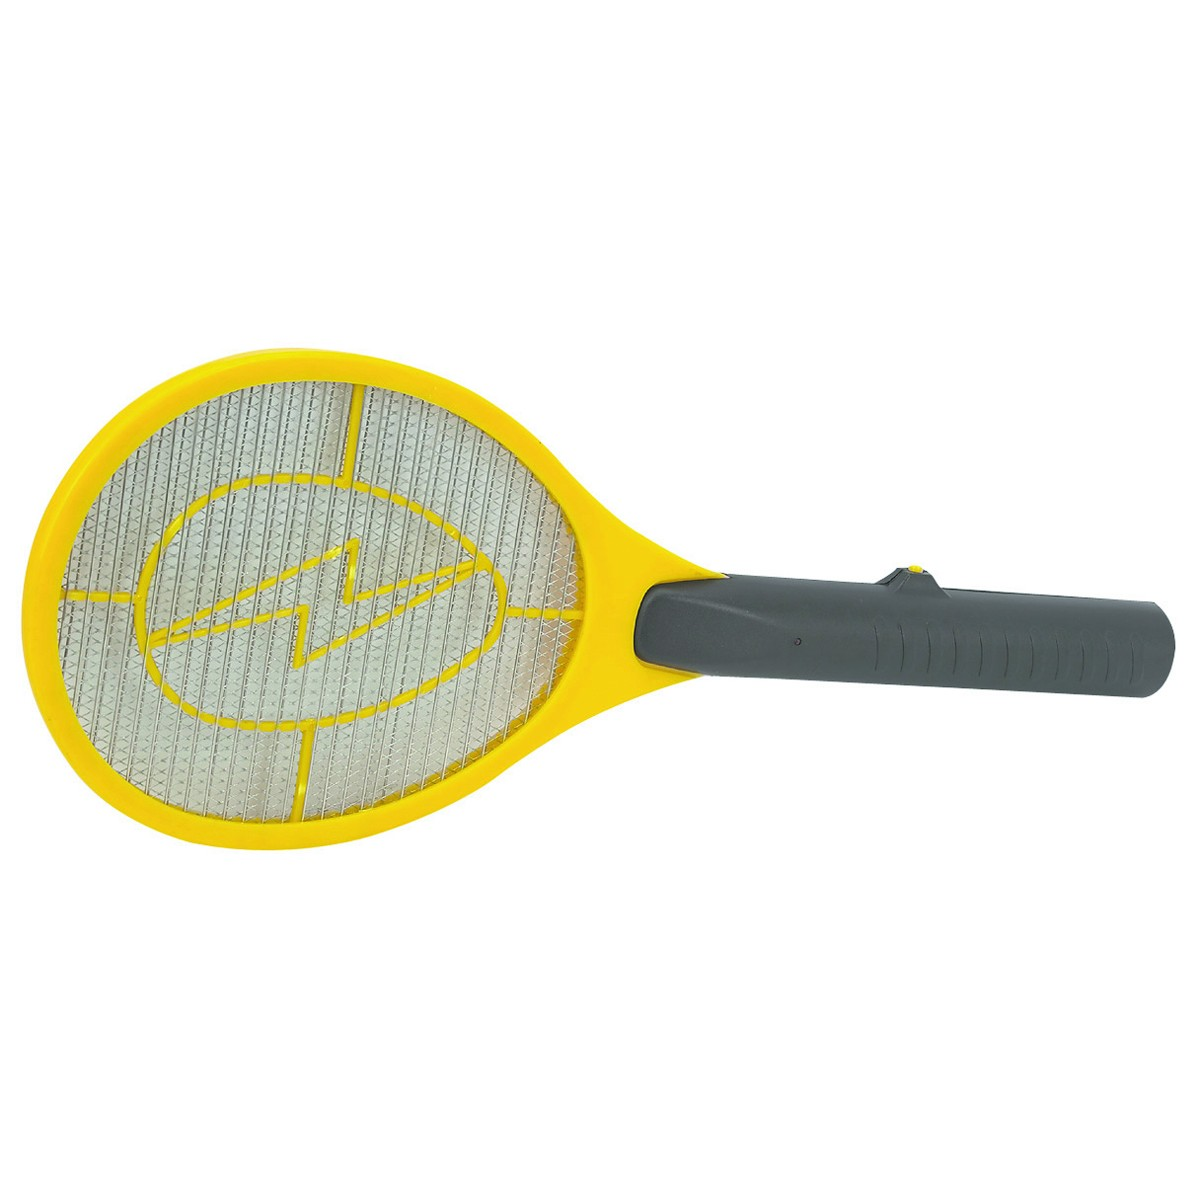 Swatter China Electric Mosquito Swatter Fly Swatter